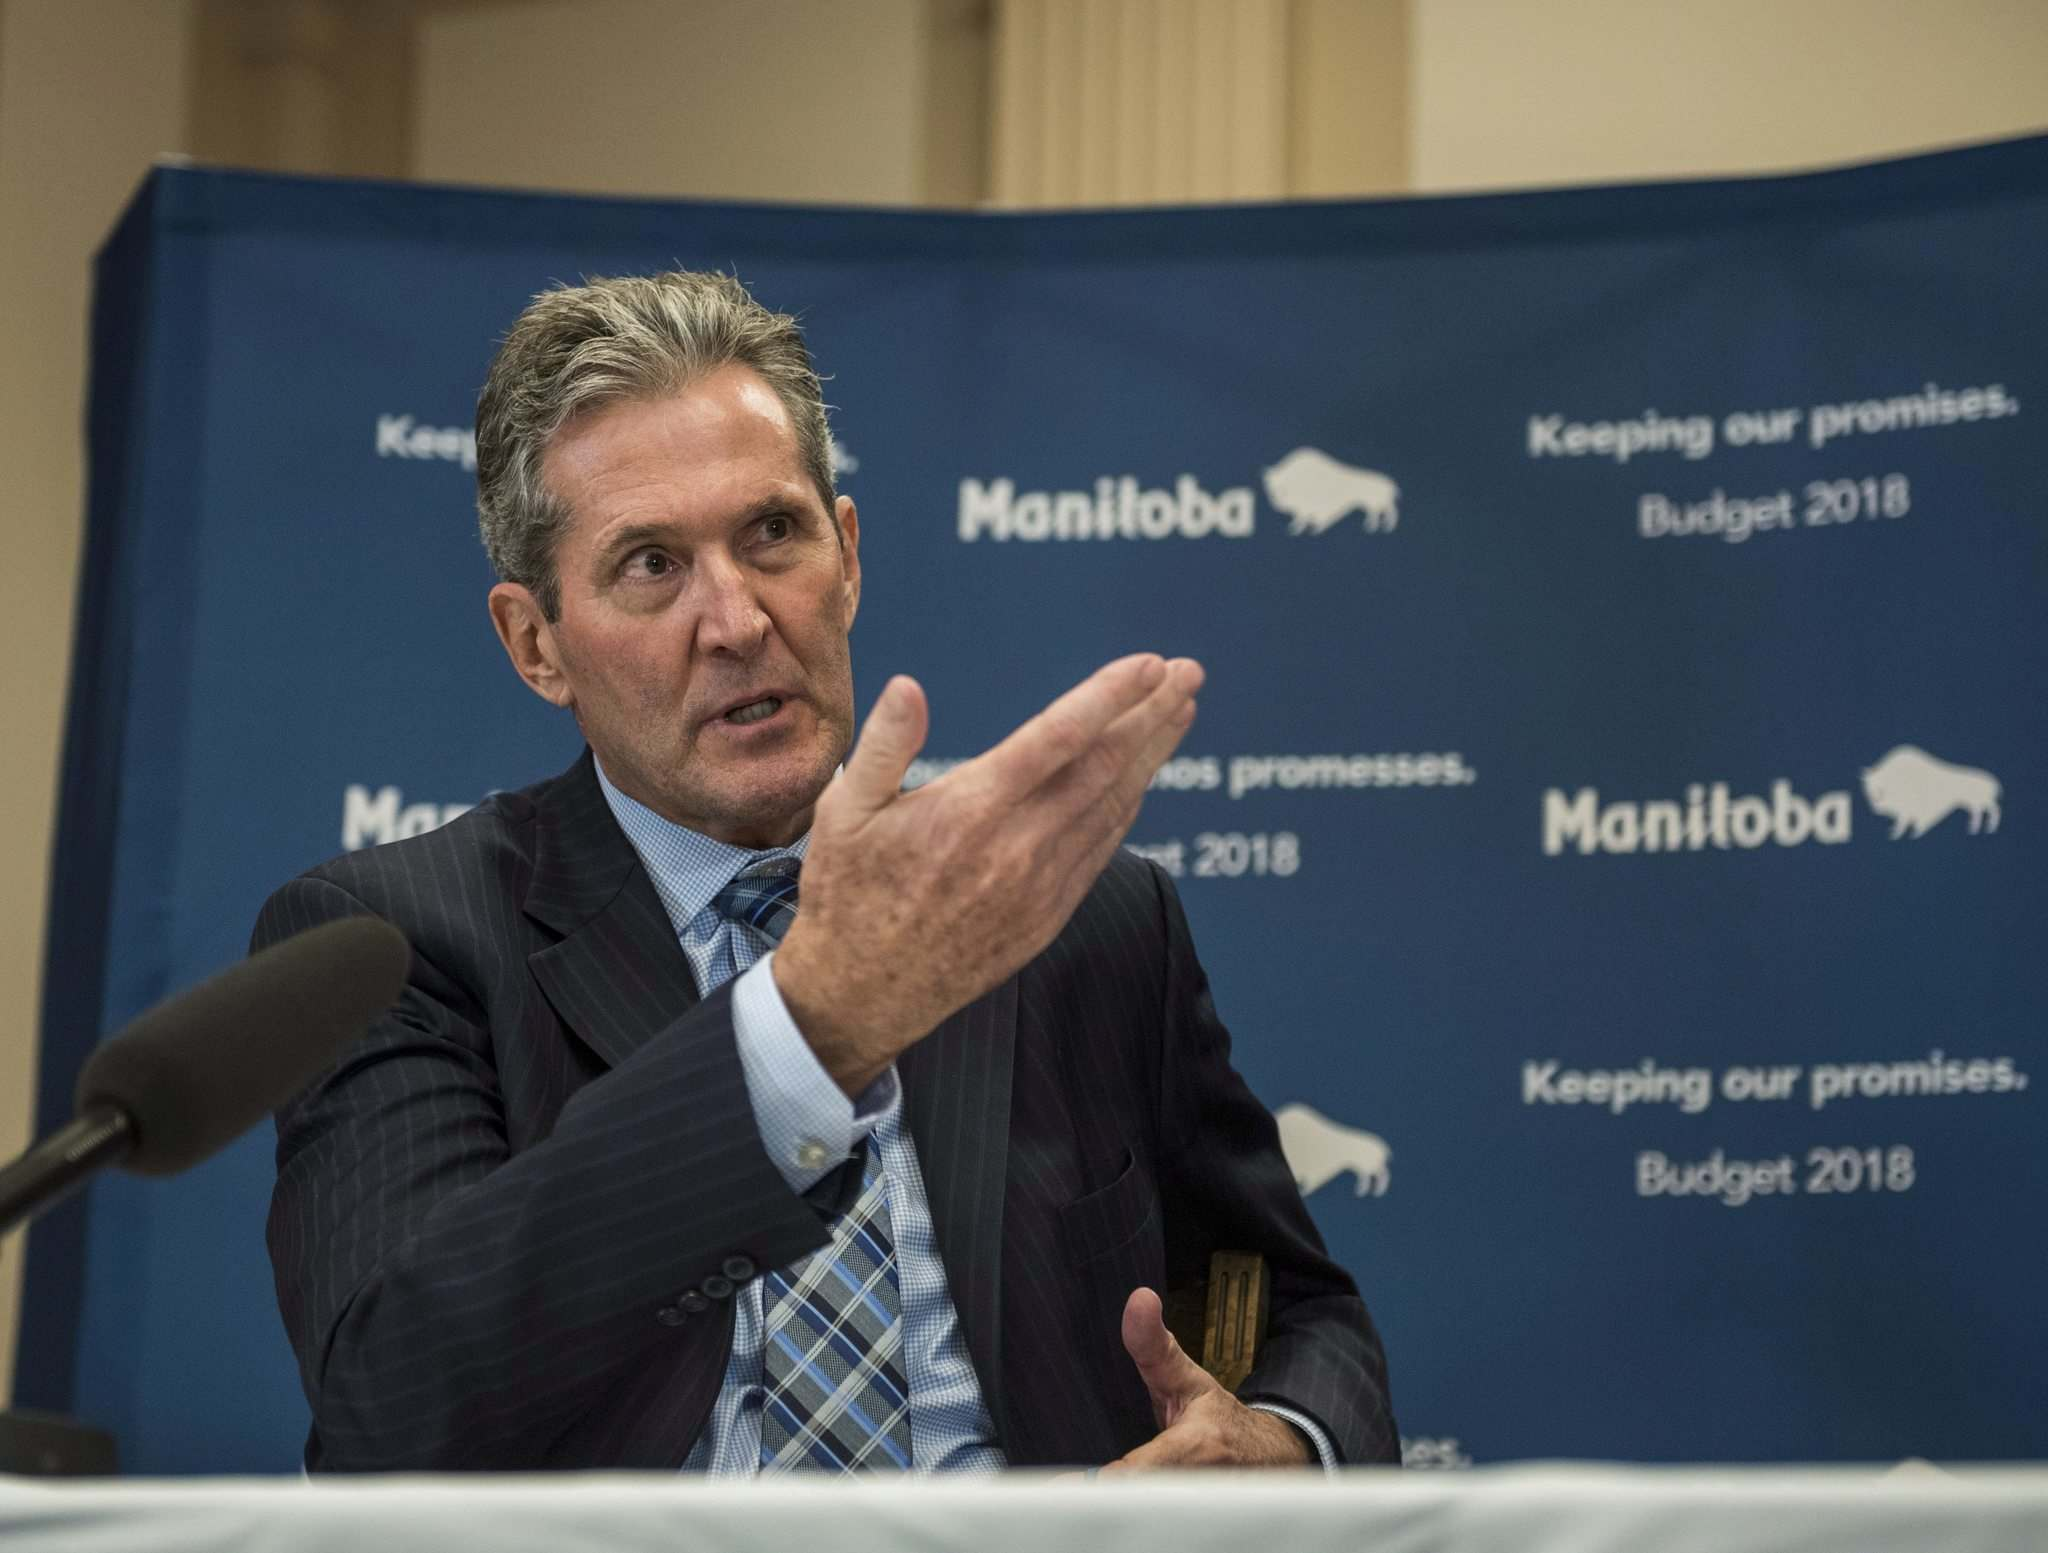 David Lipnowski / The Canadian Press Files</p><p>Manitoba Premier Brian Pallister speaks about the 2018 budget at the Manitoba Legislature.</p>